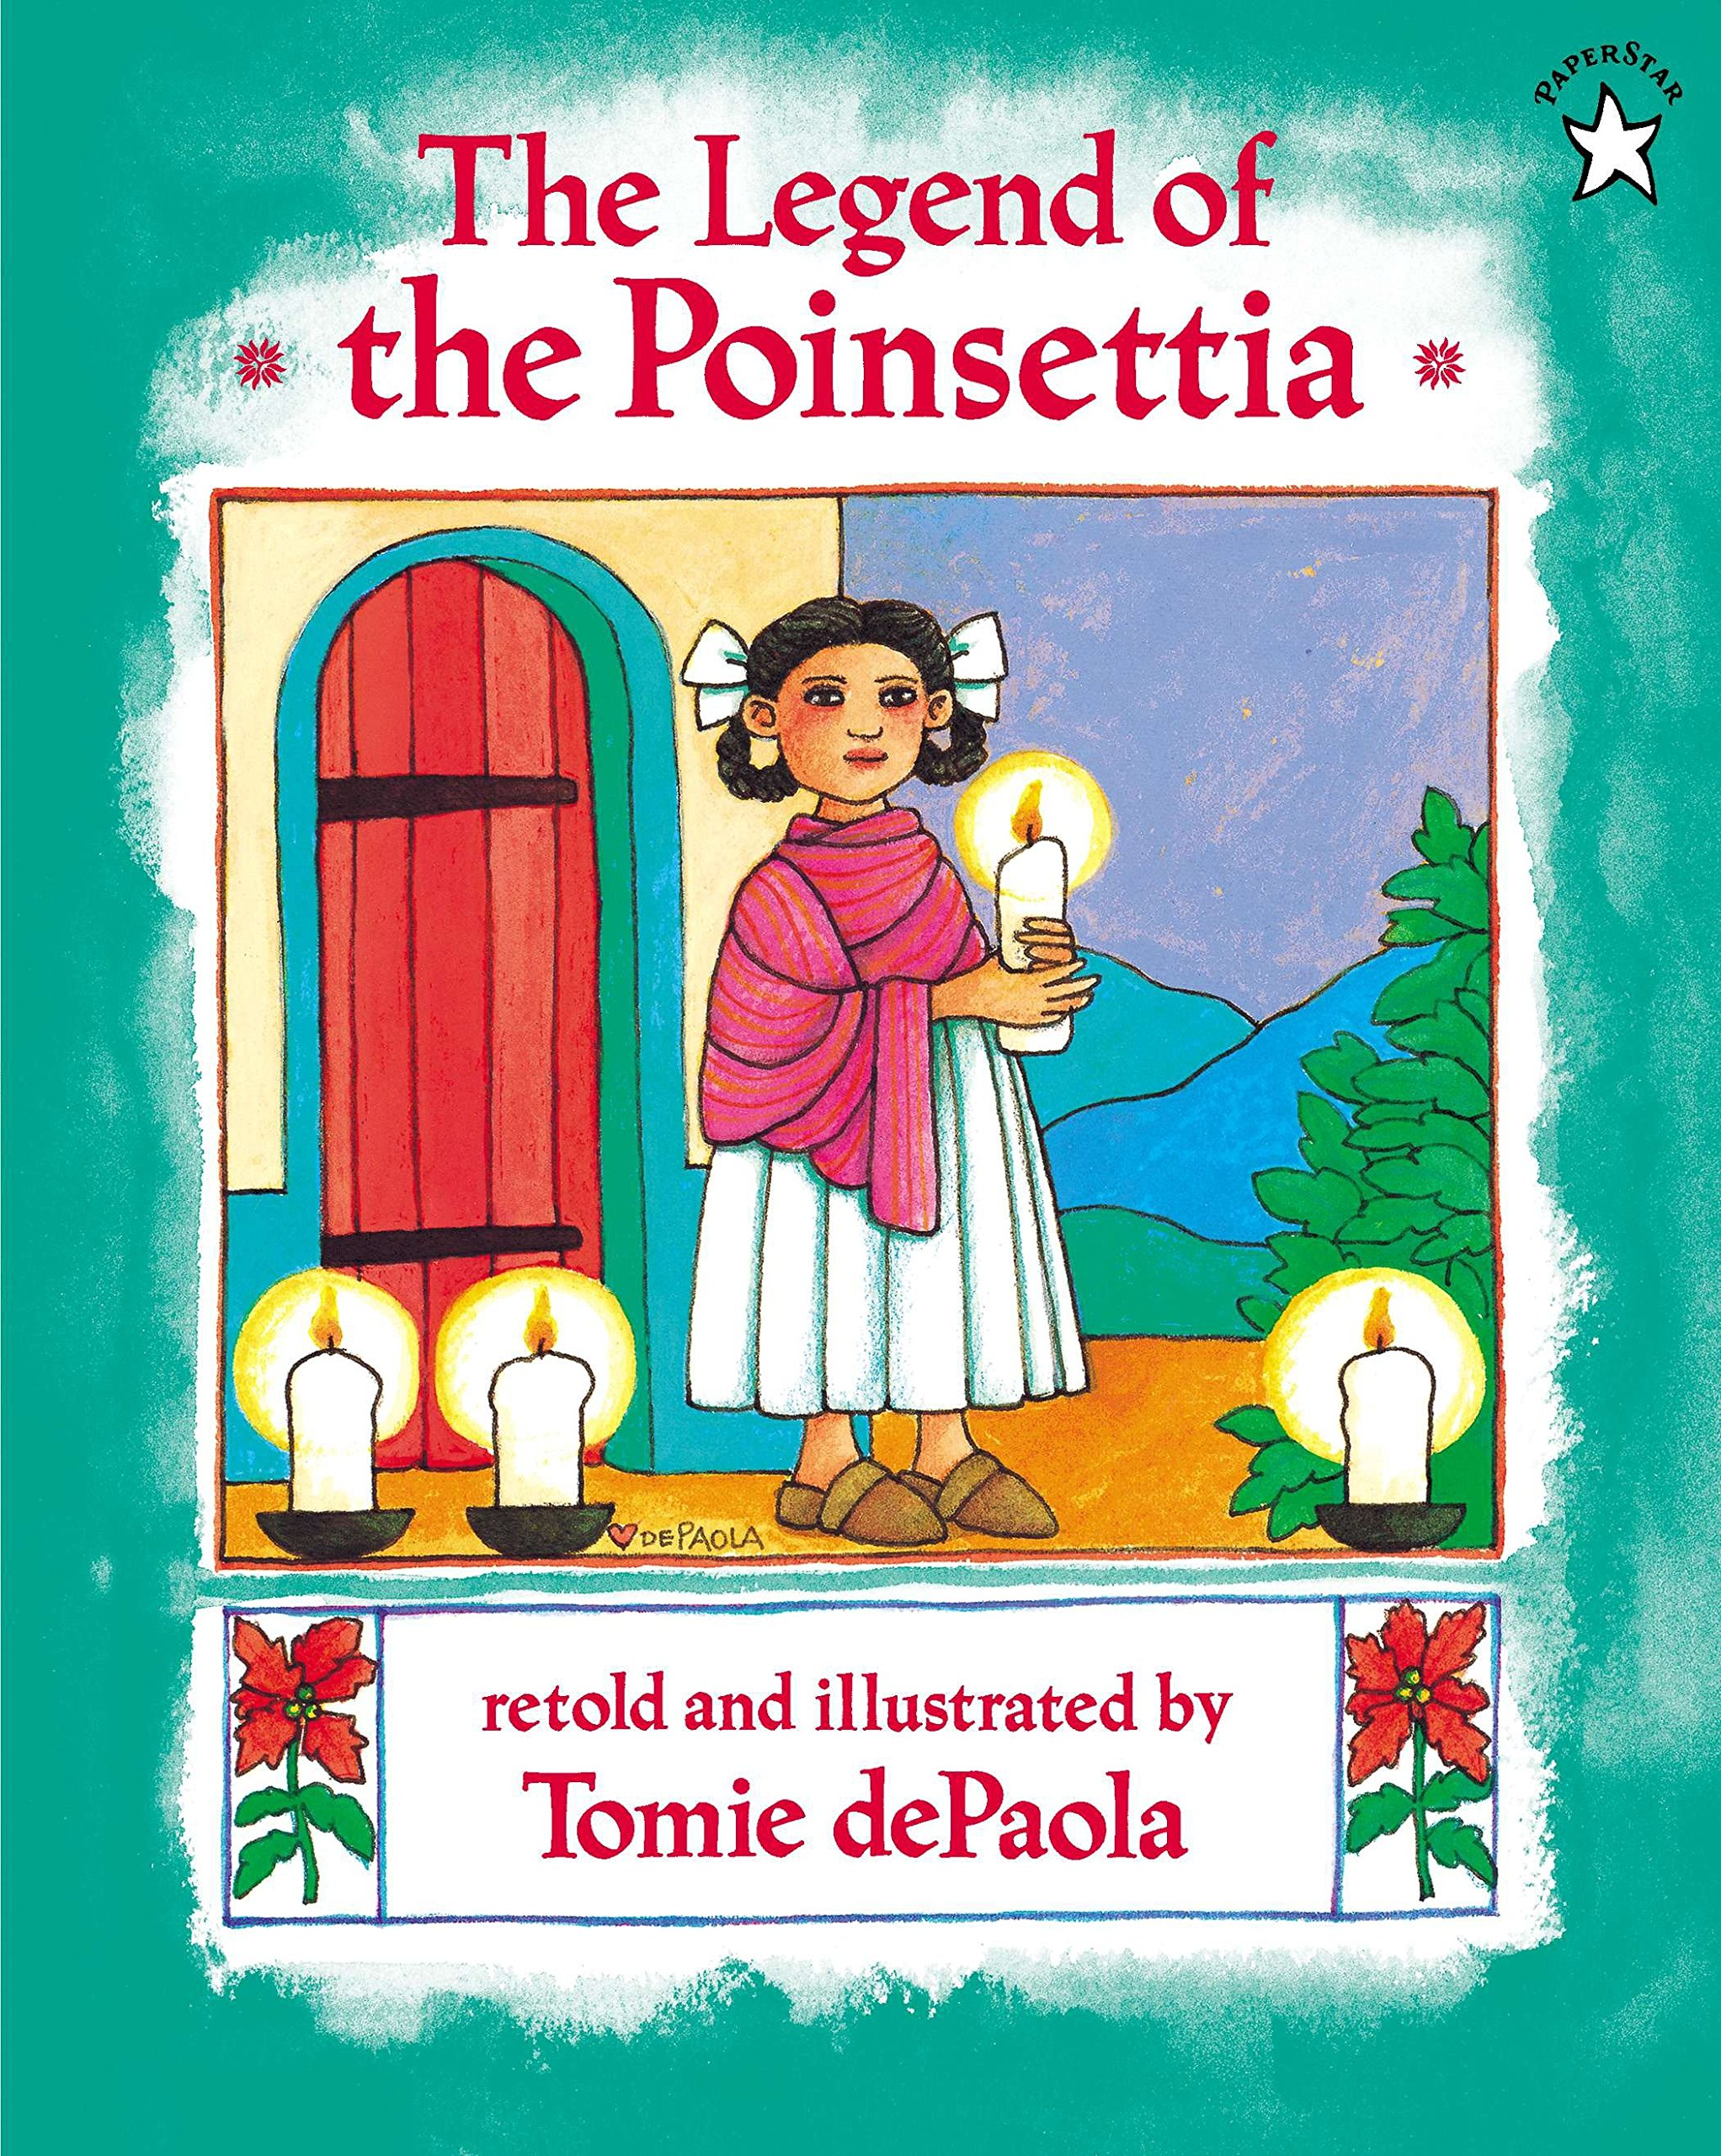 Amazon.com: The Legend of the Poinsettia (9780698115675): dePaola, Tomie:  Books